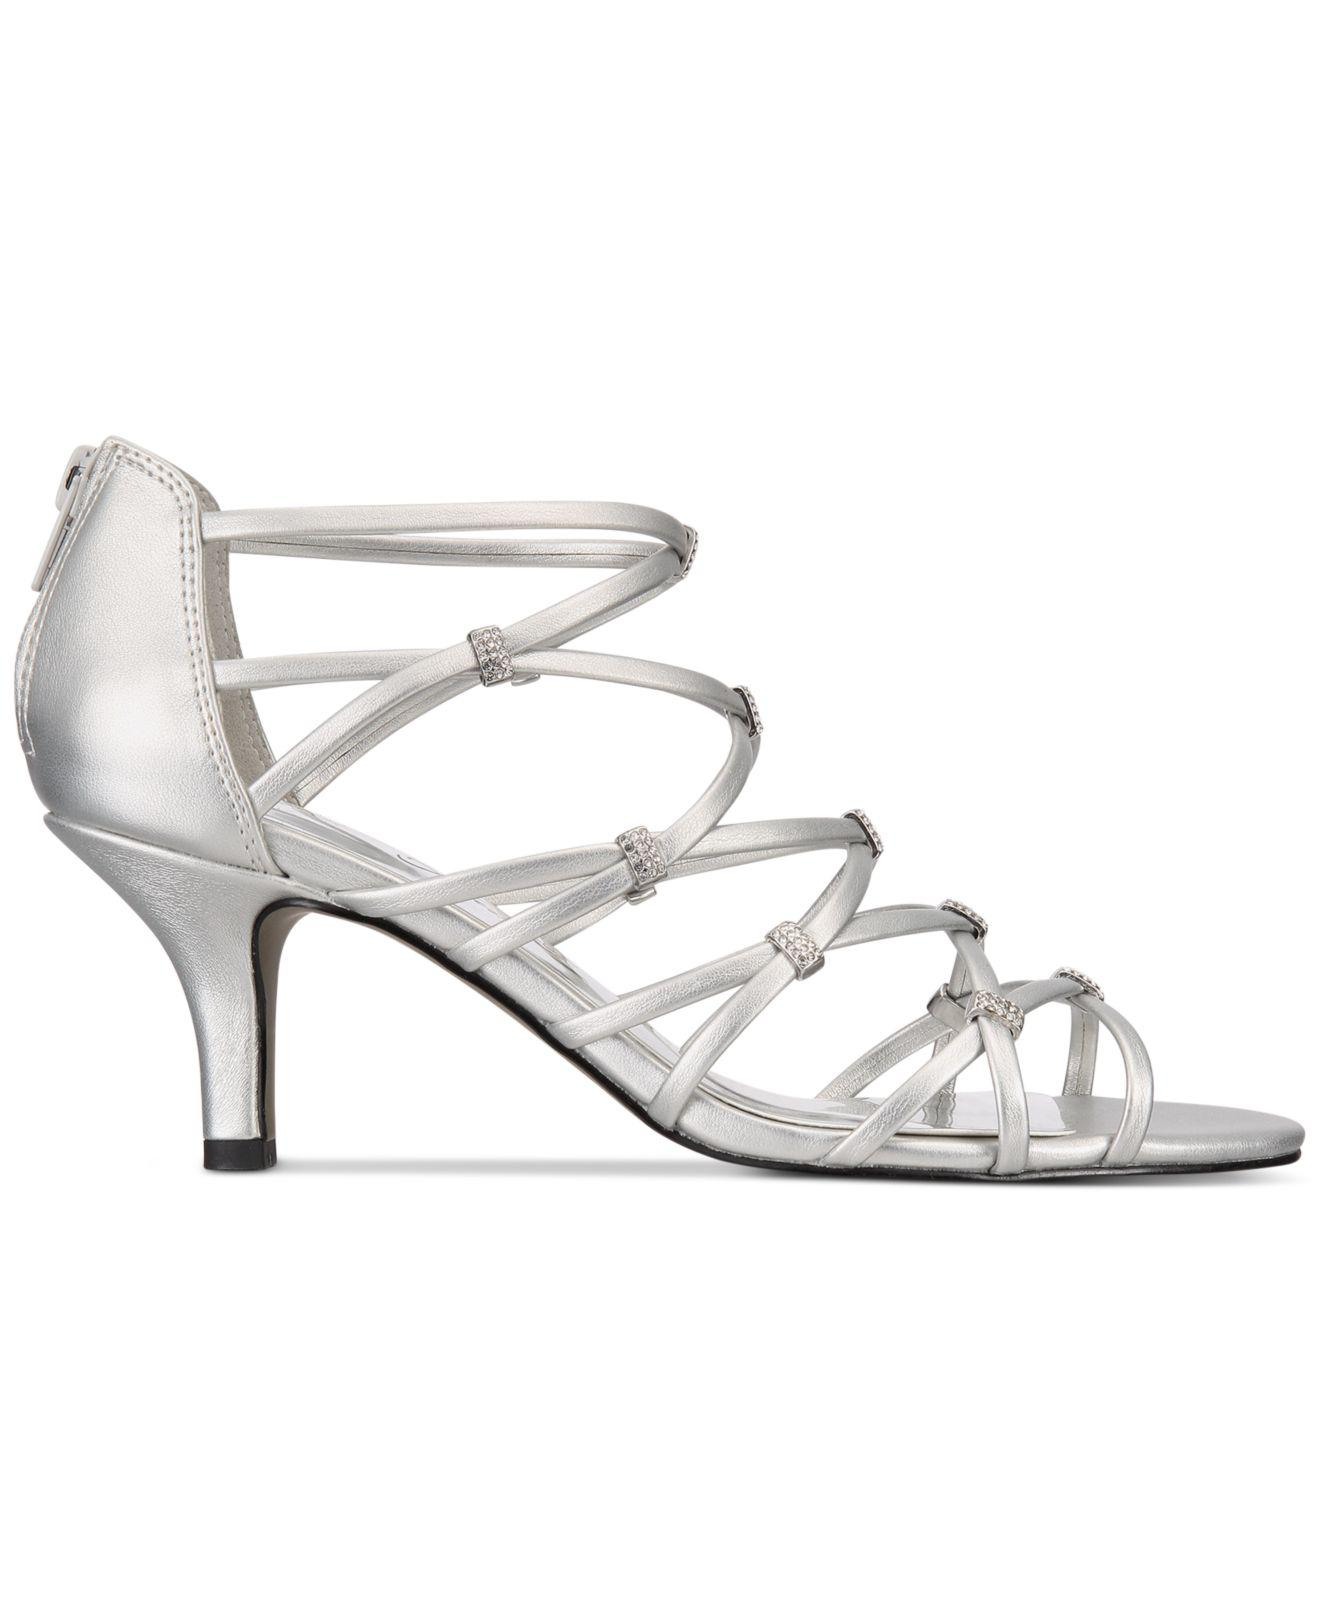 2e931fe3917 Easy Street Nightingale Evening Sandals in Metallic - Lyst